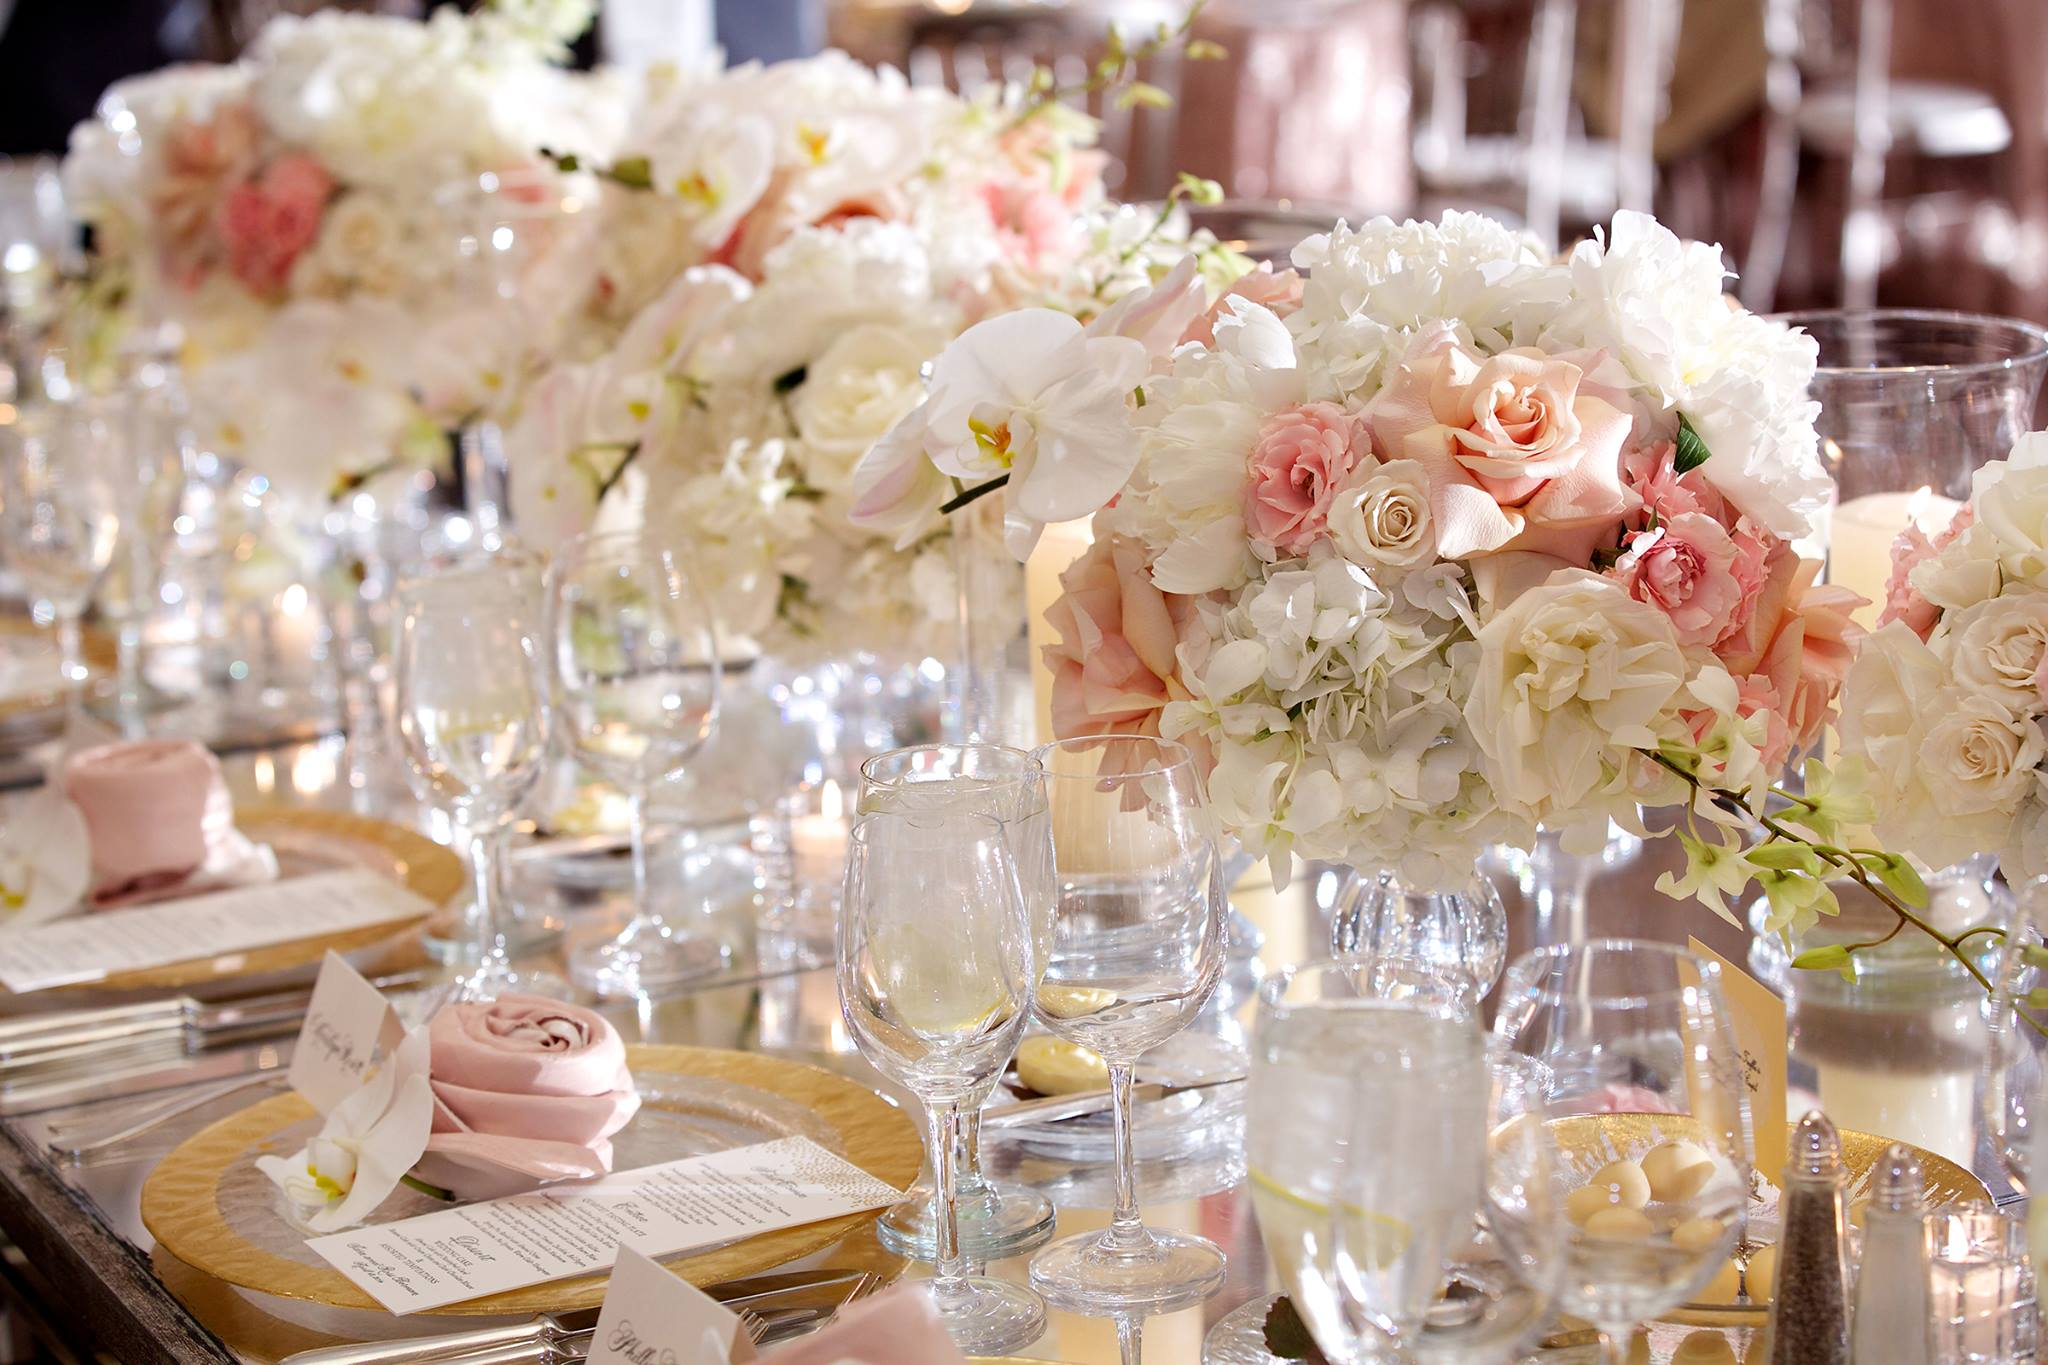 Steal-Worthy Wedding Flower Ideas